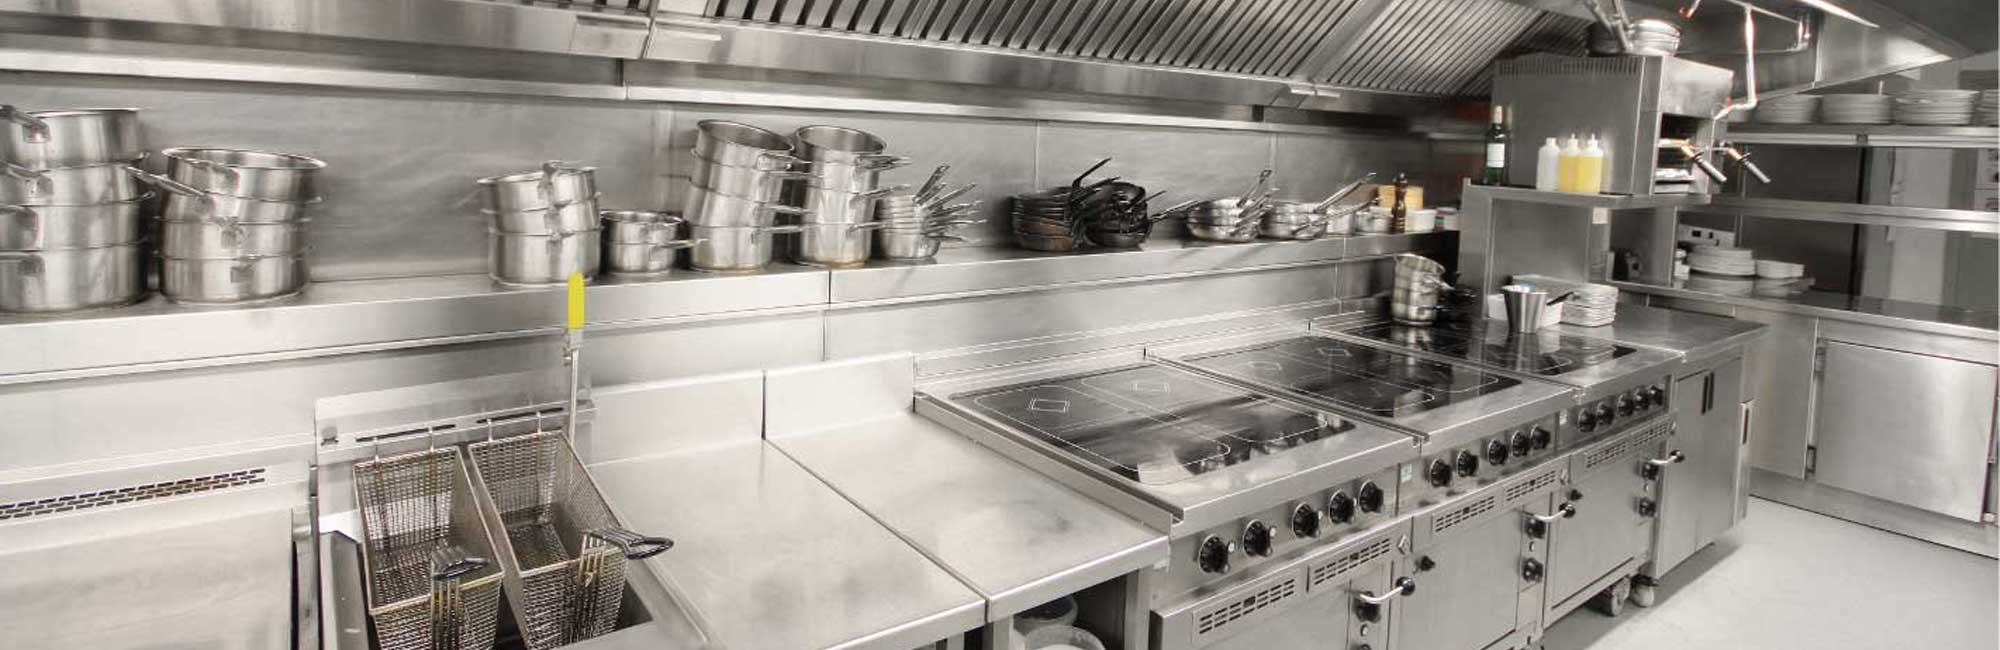 Commercial Kitchen Hood Cleaning Services